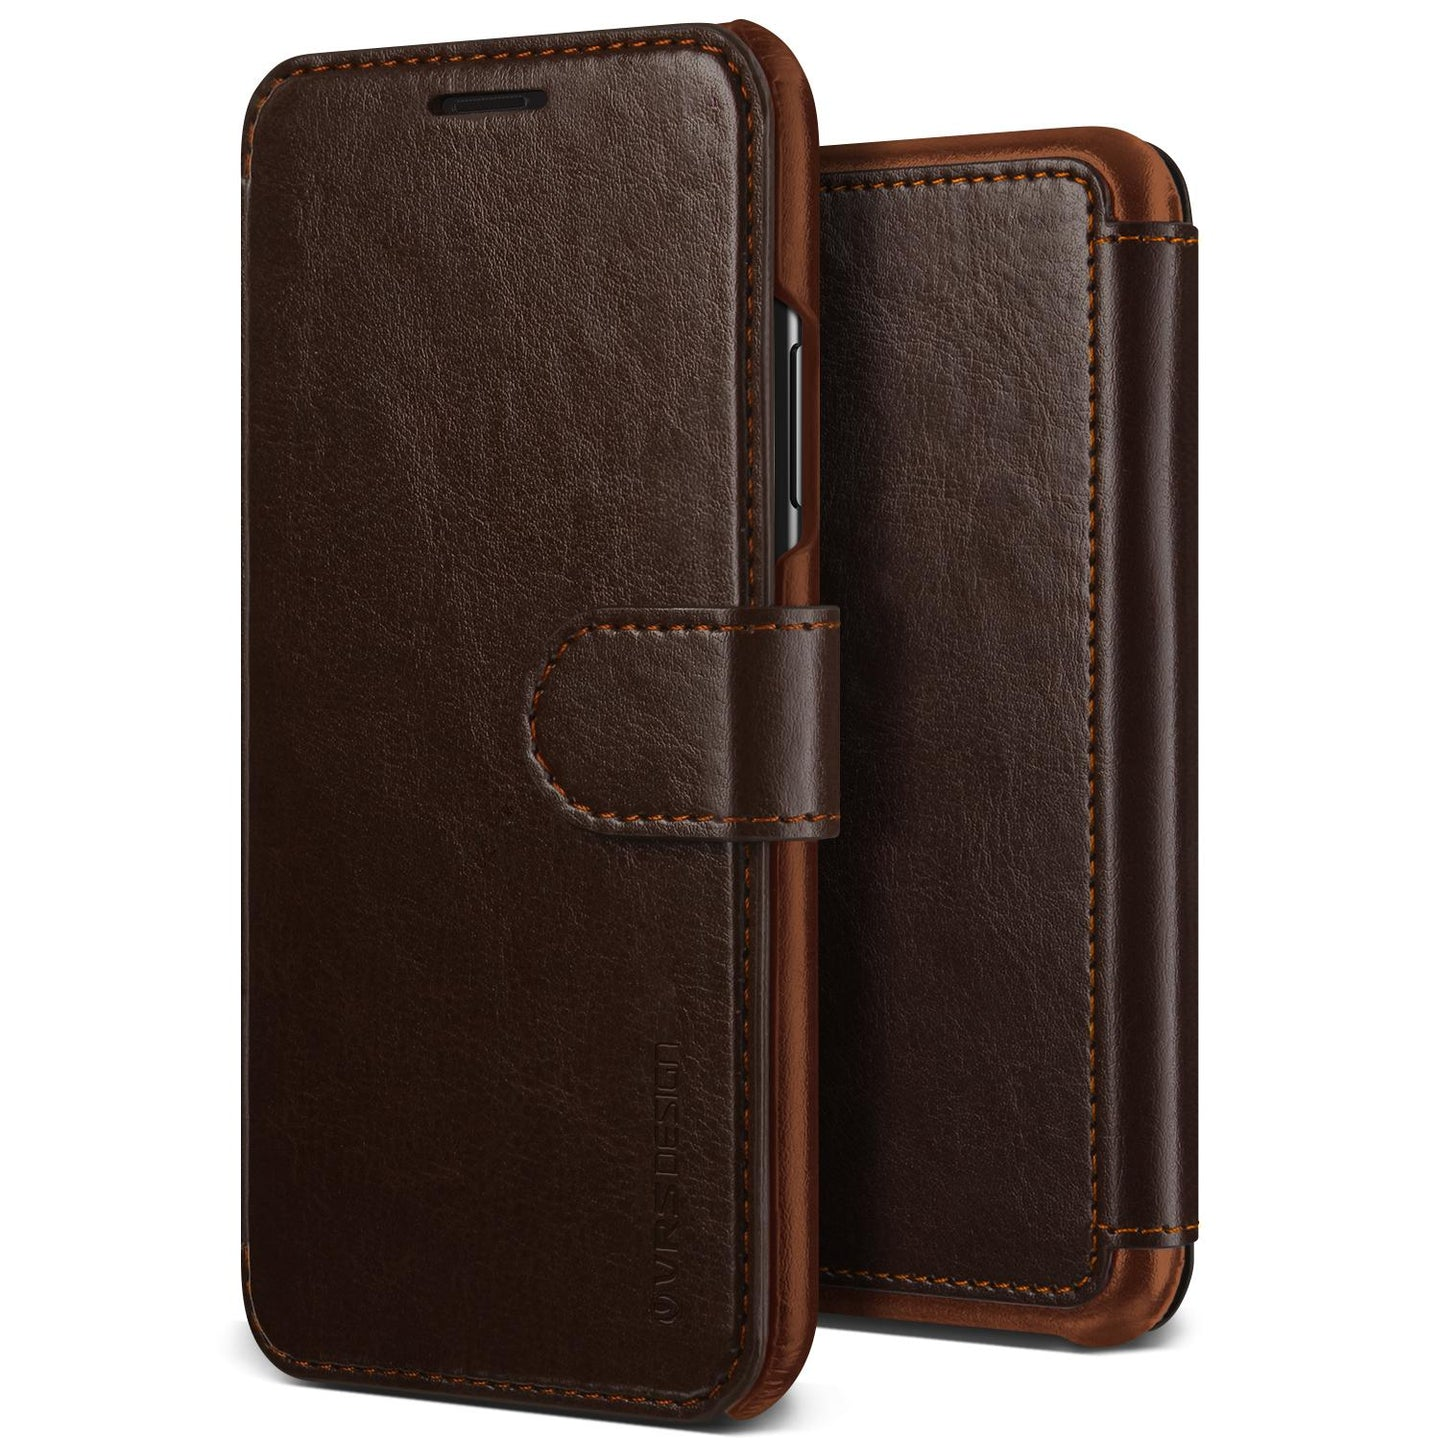 Vrs Design Layered Dandy Folio Case Dark Brown for iPhone XR